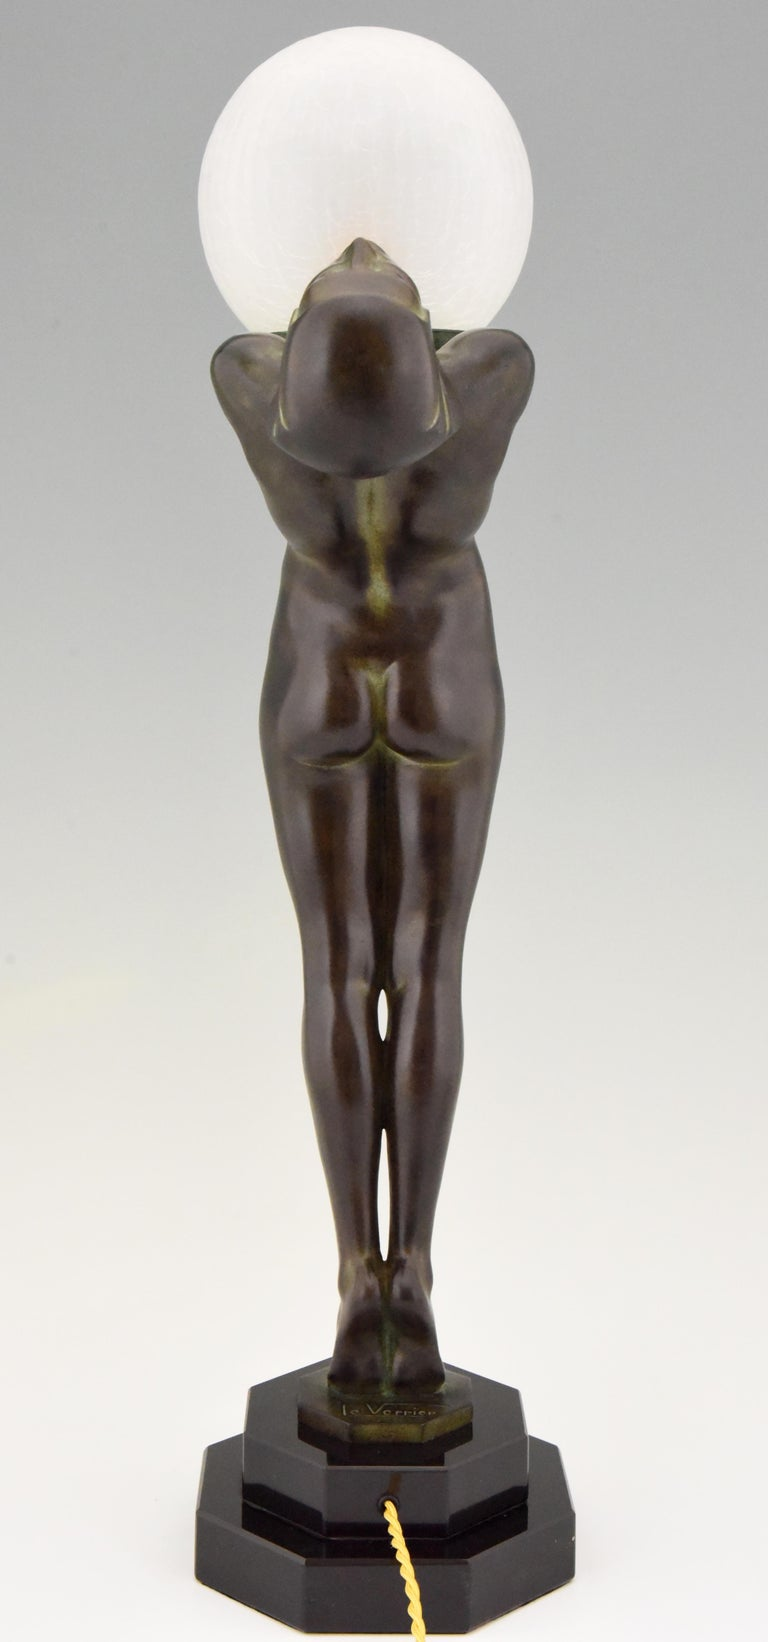 Pair of Art Deco Style Lamps Lumina Standing Nude Sculpture Max Le Verrier For Sale 5